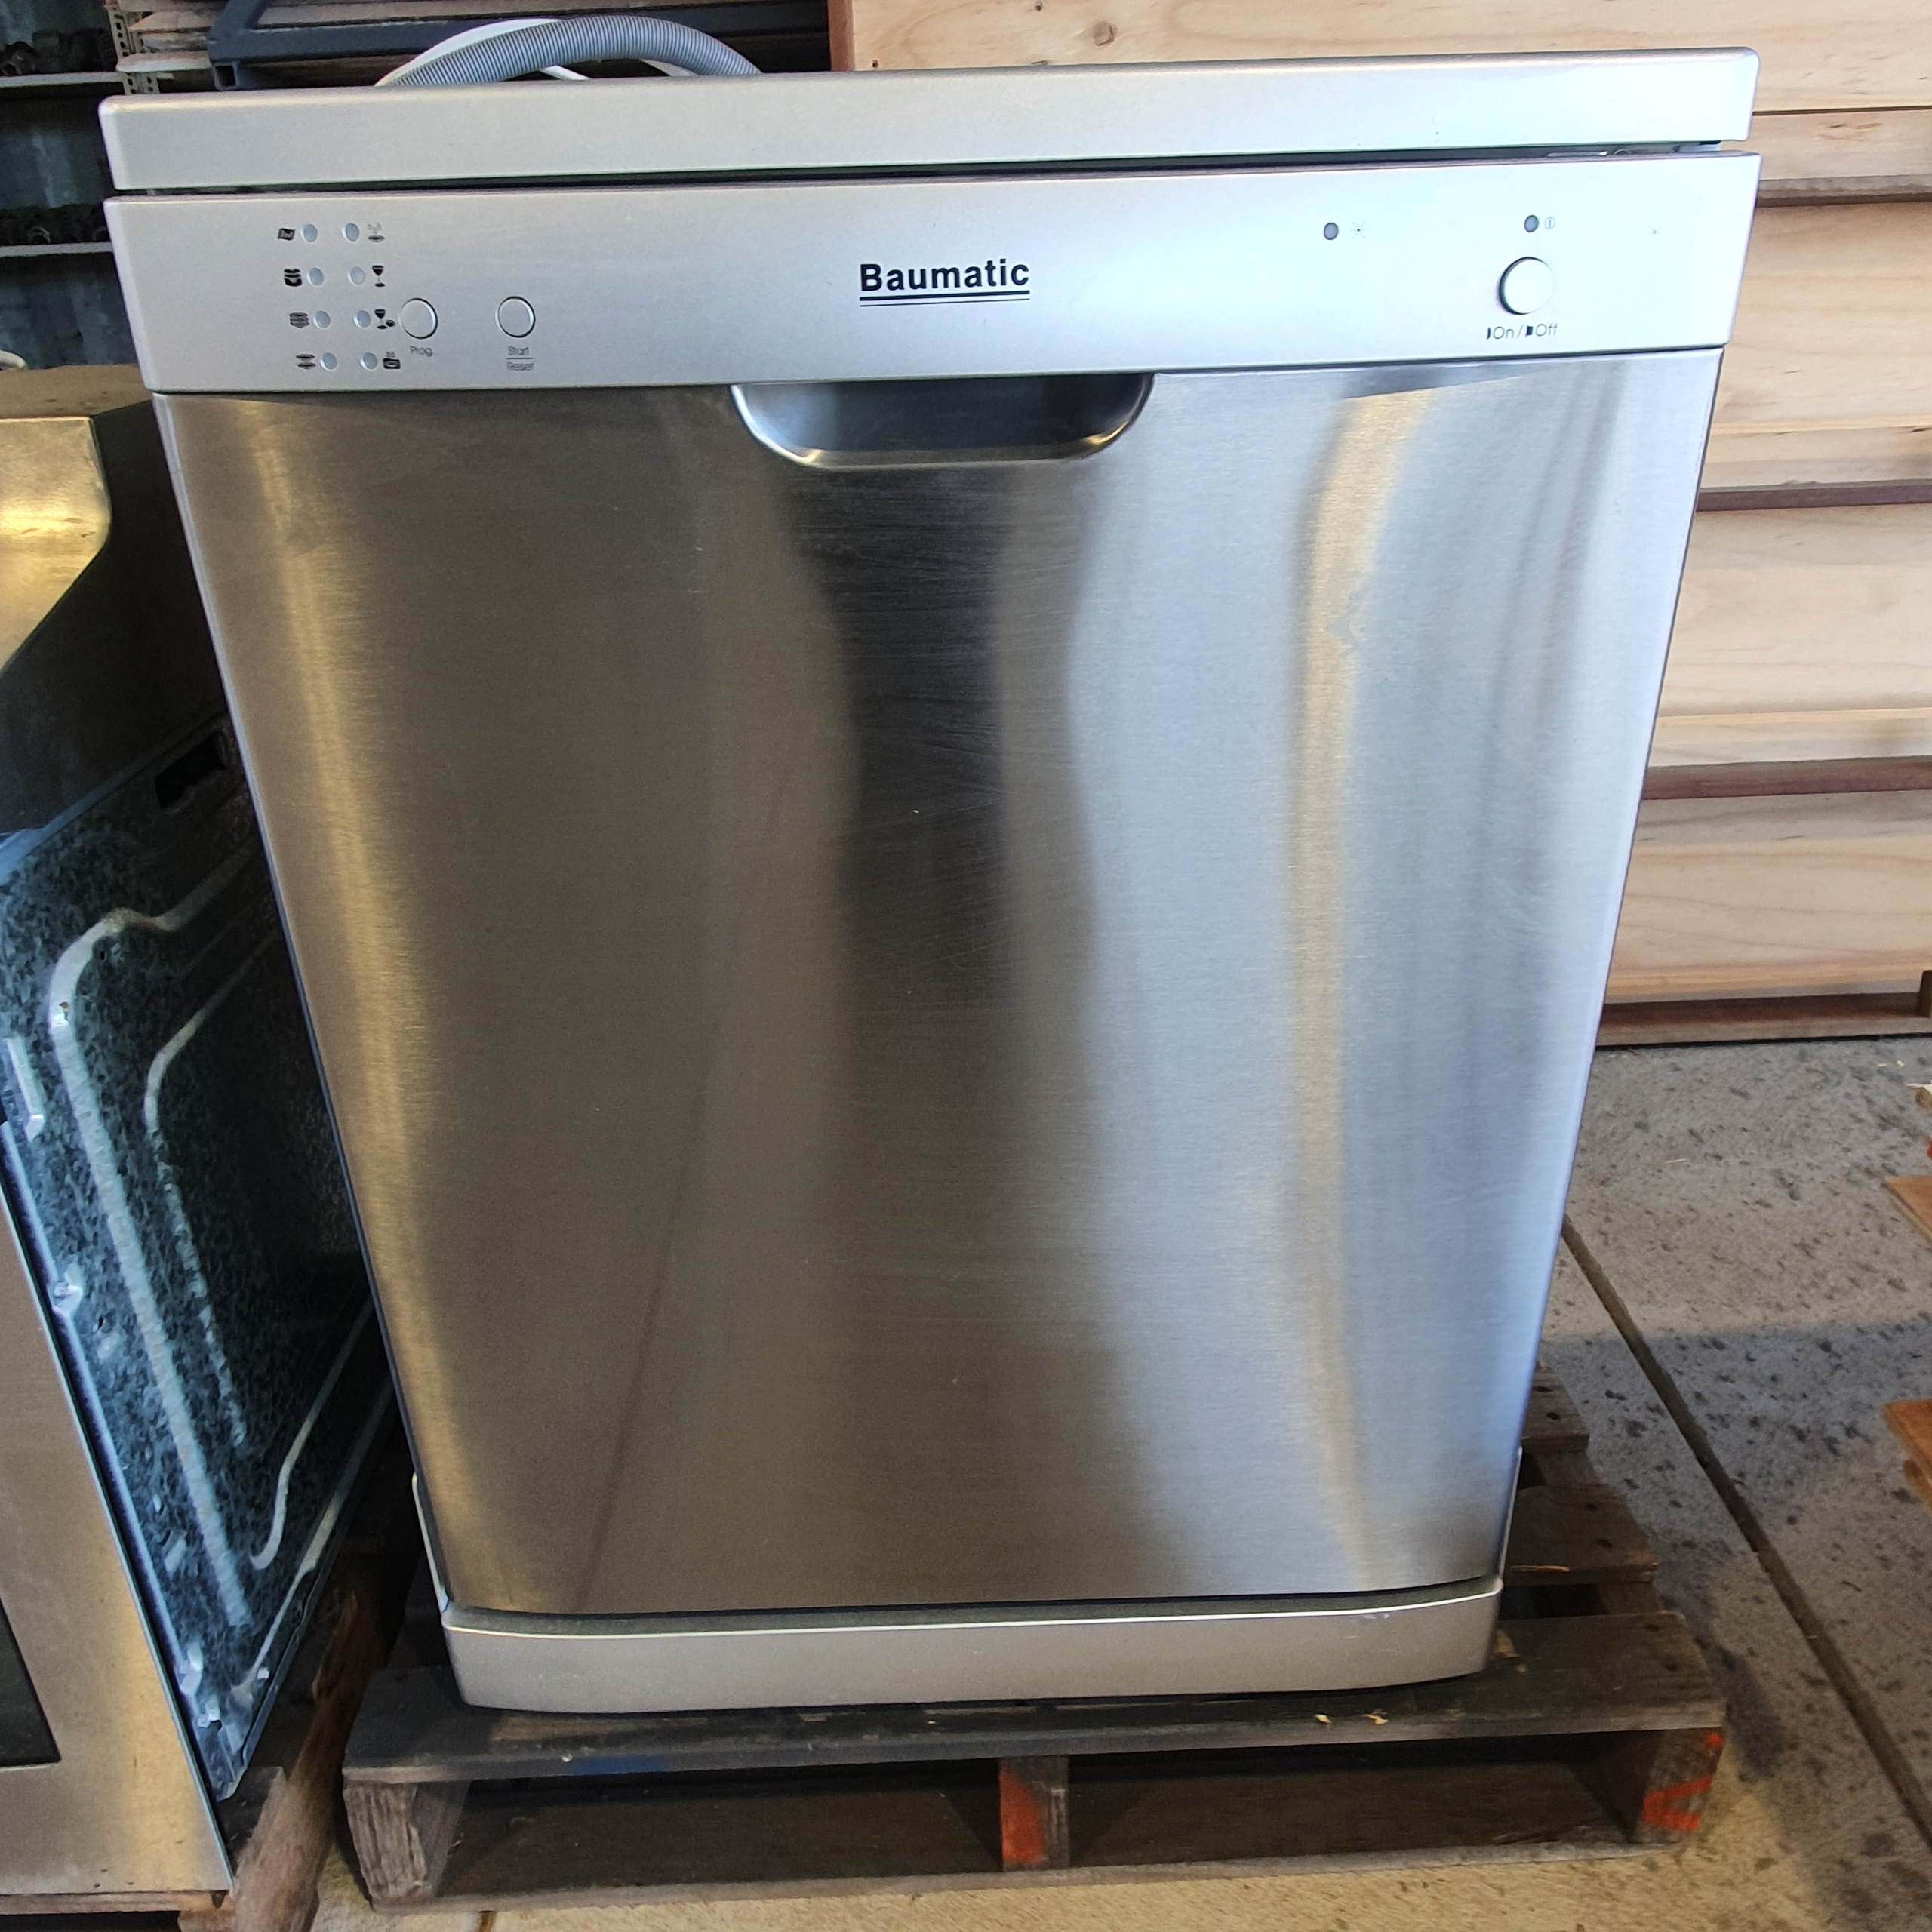 Baumatic Dishwasher.